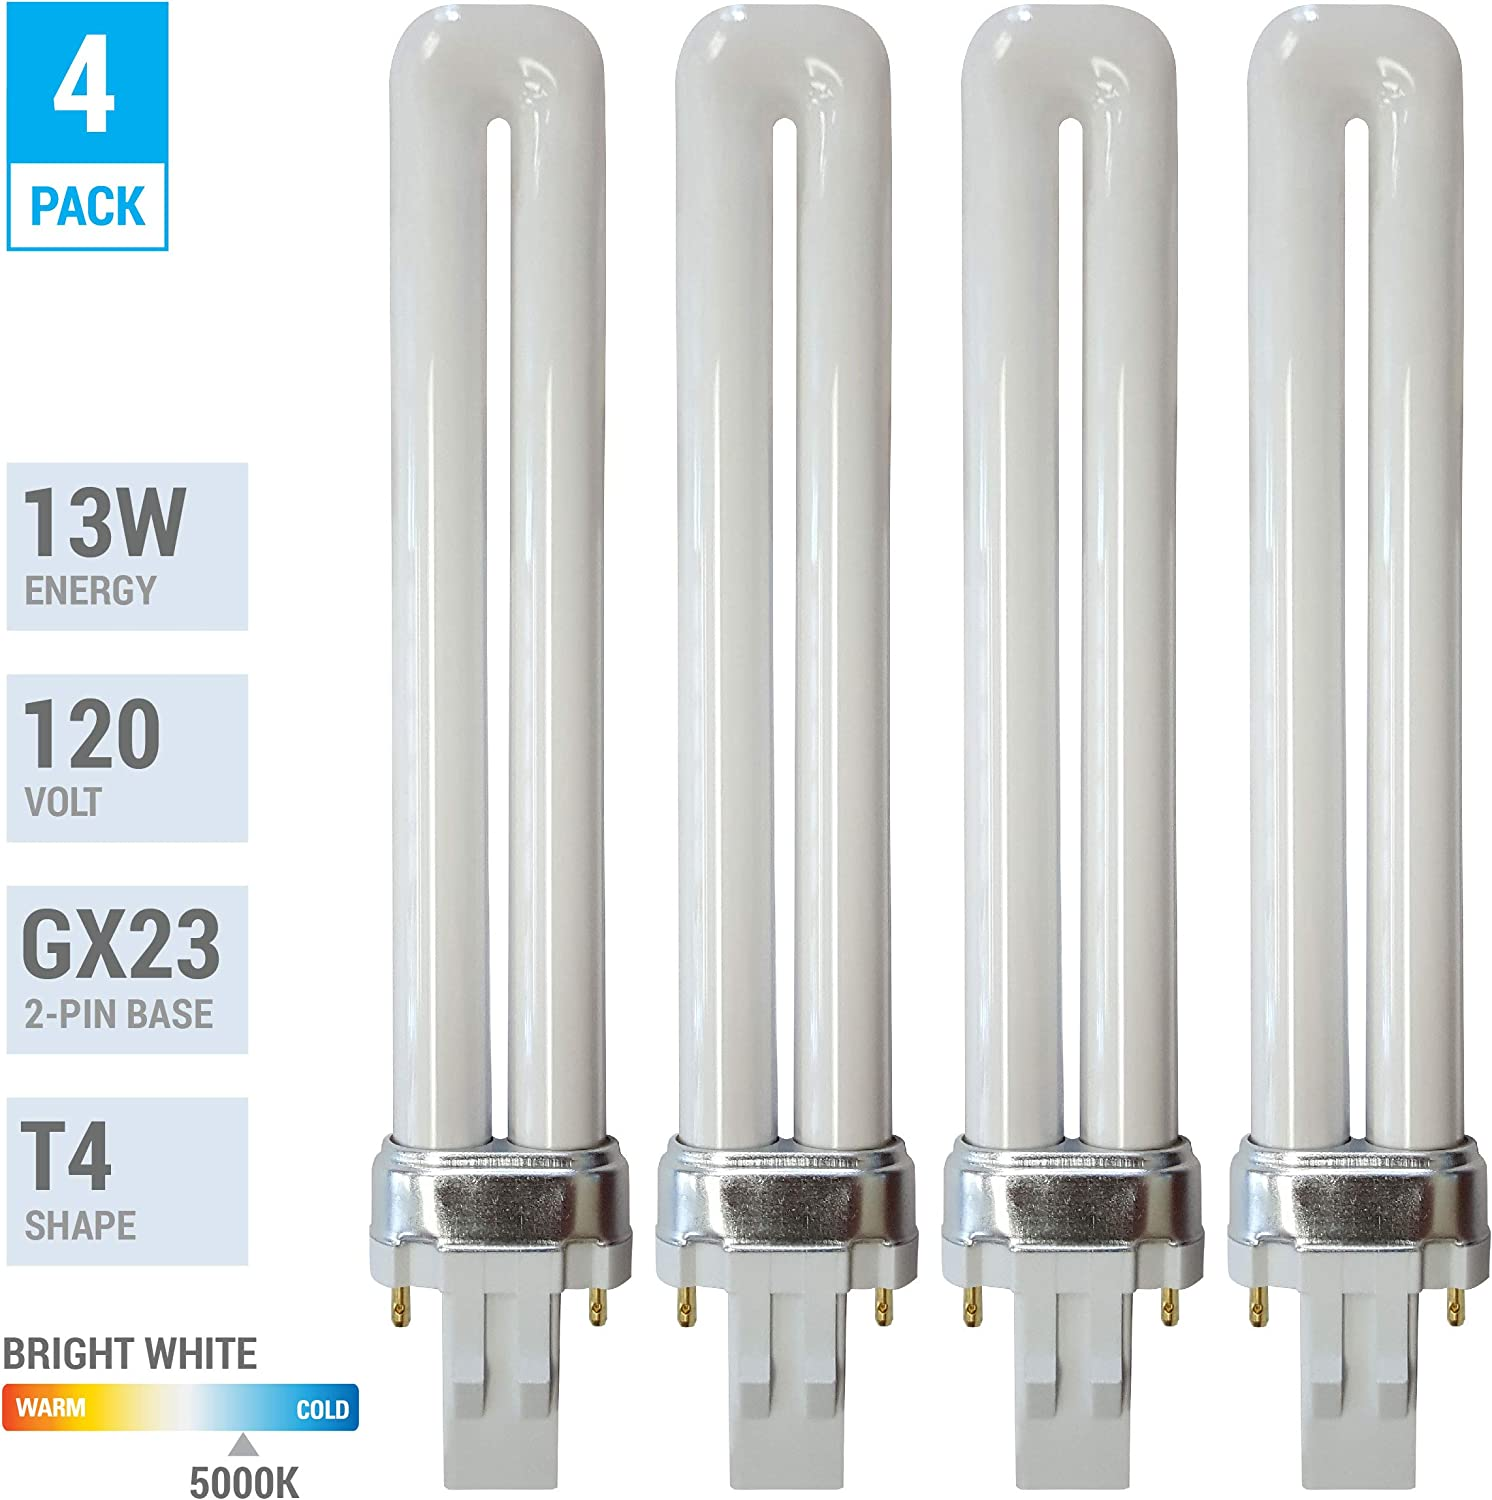 (Pack of 4) 13 Watt Single Tube 2 Pin GX23 Base - 5000K Bright White 50K - CFL Light Bulb - Replacement for Sylvania 21135 CF13DS/850- Philips 146878 PL-S 13W/850 and GE 97572 F13BX/850